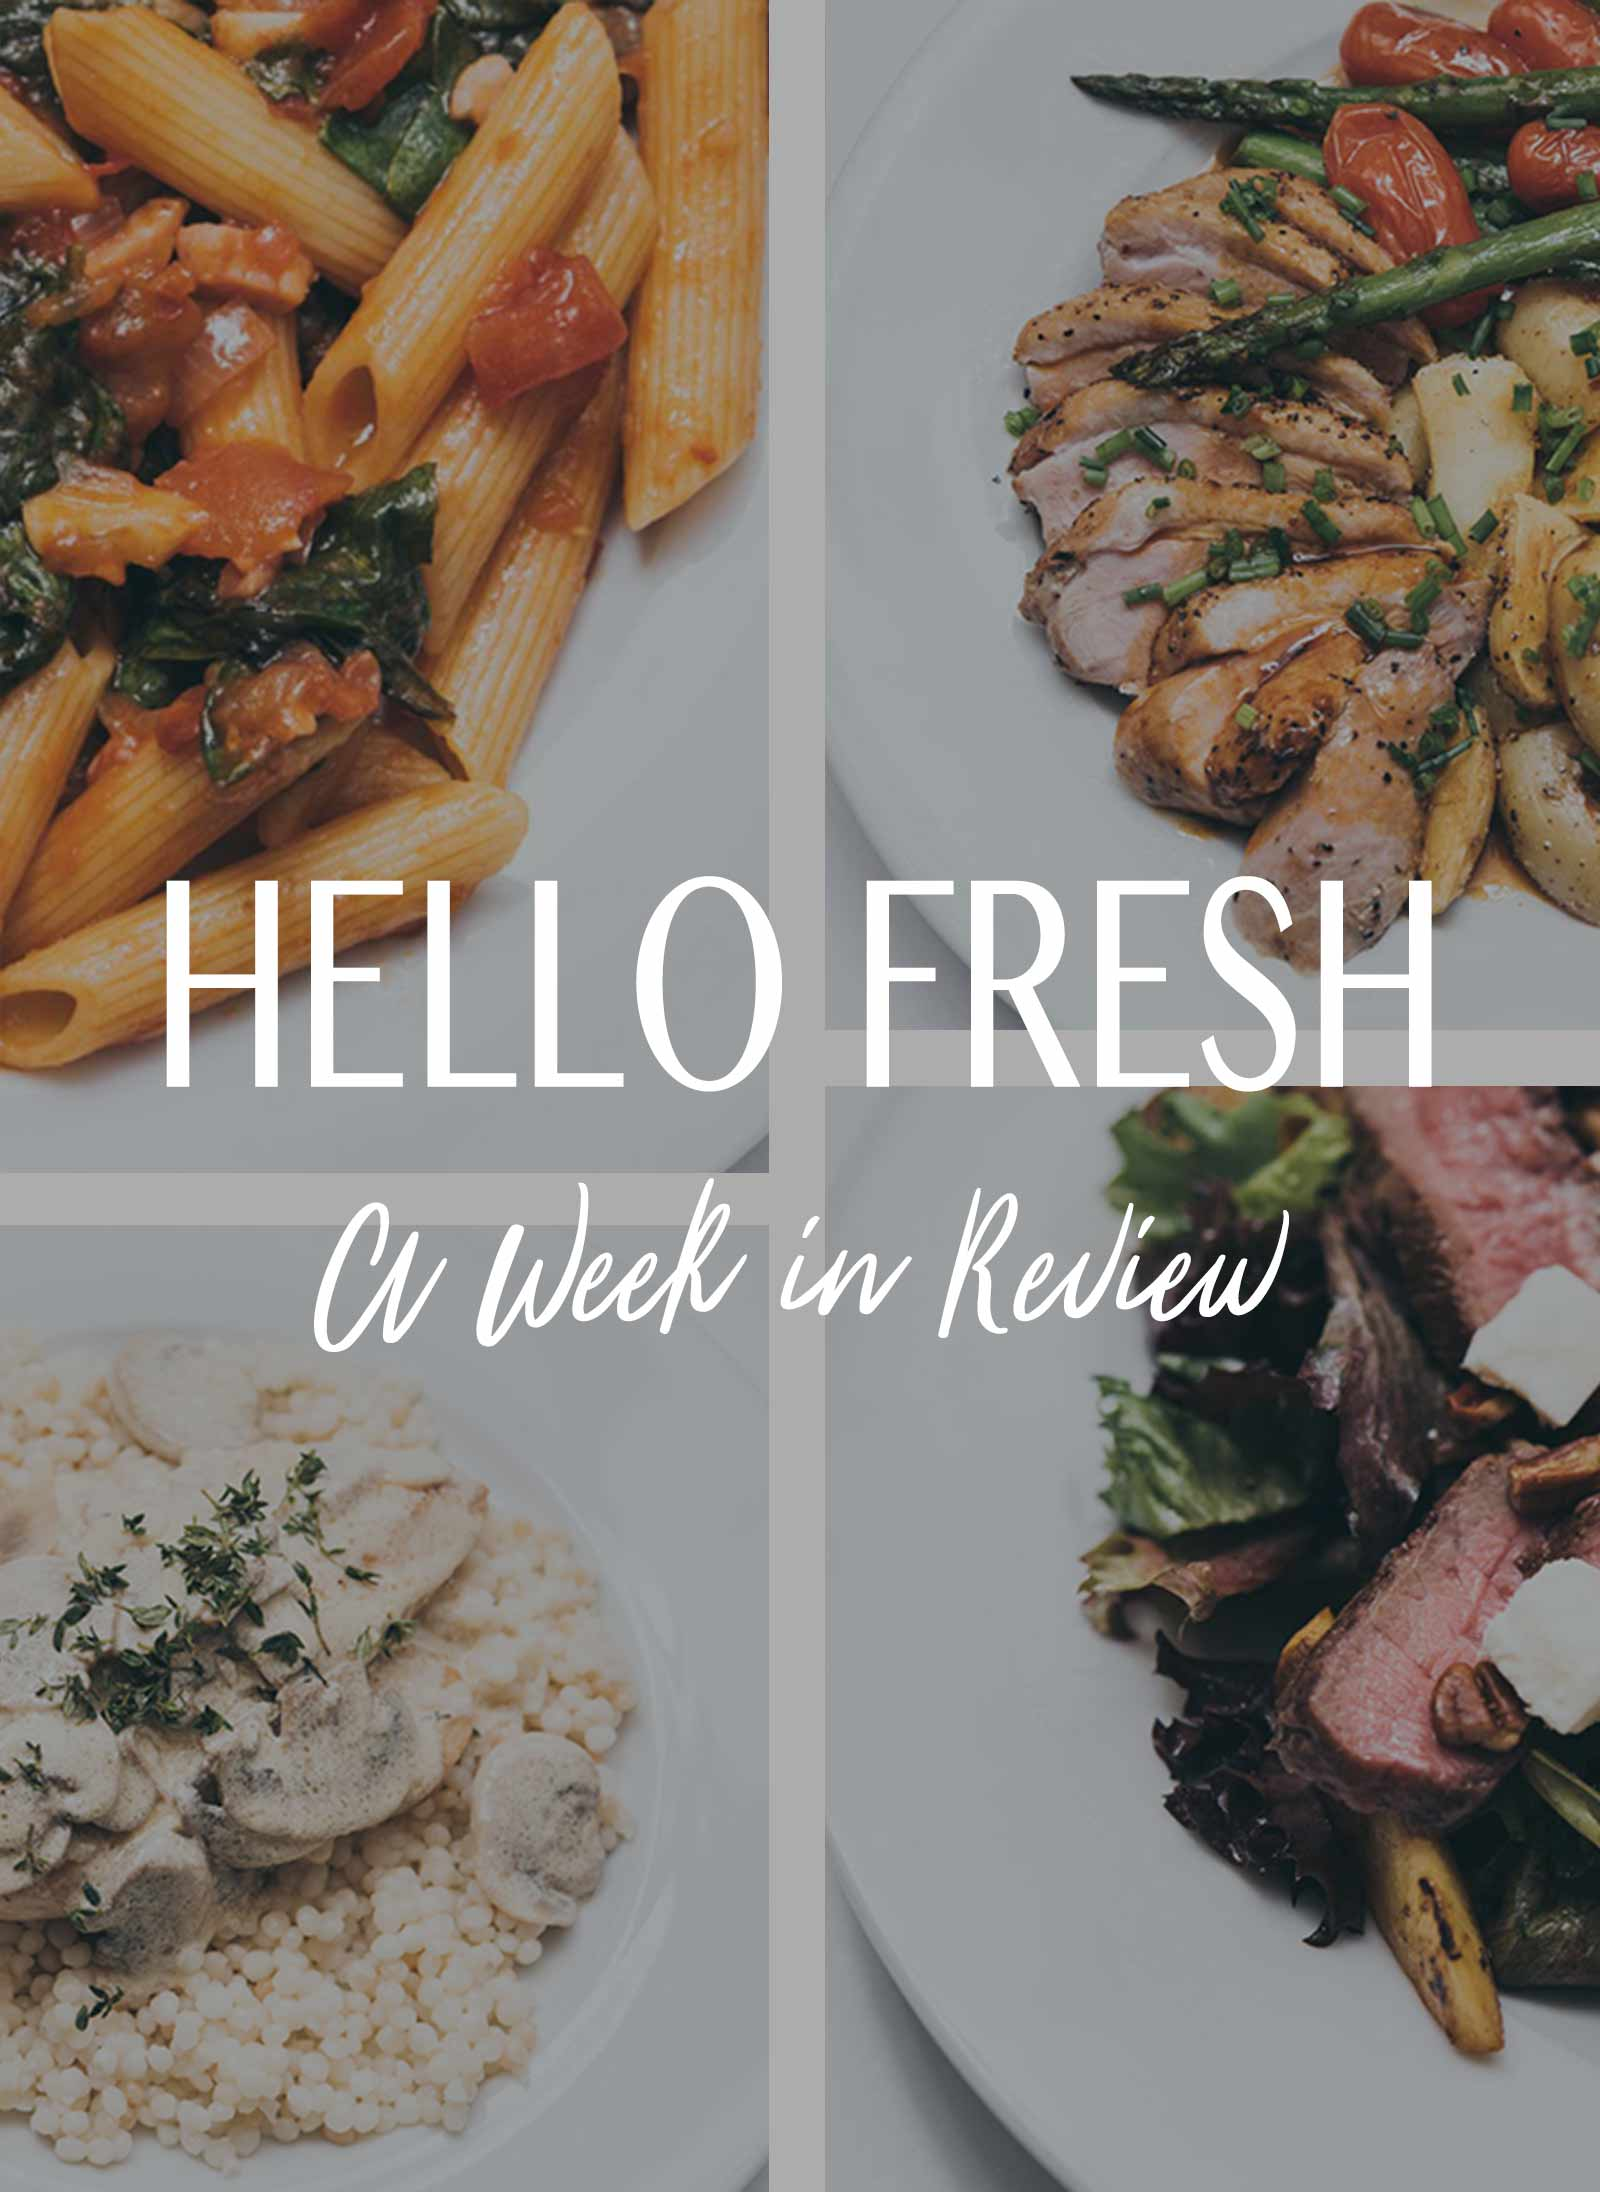 Buy Hellofresh Square Deal